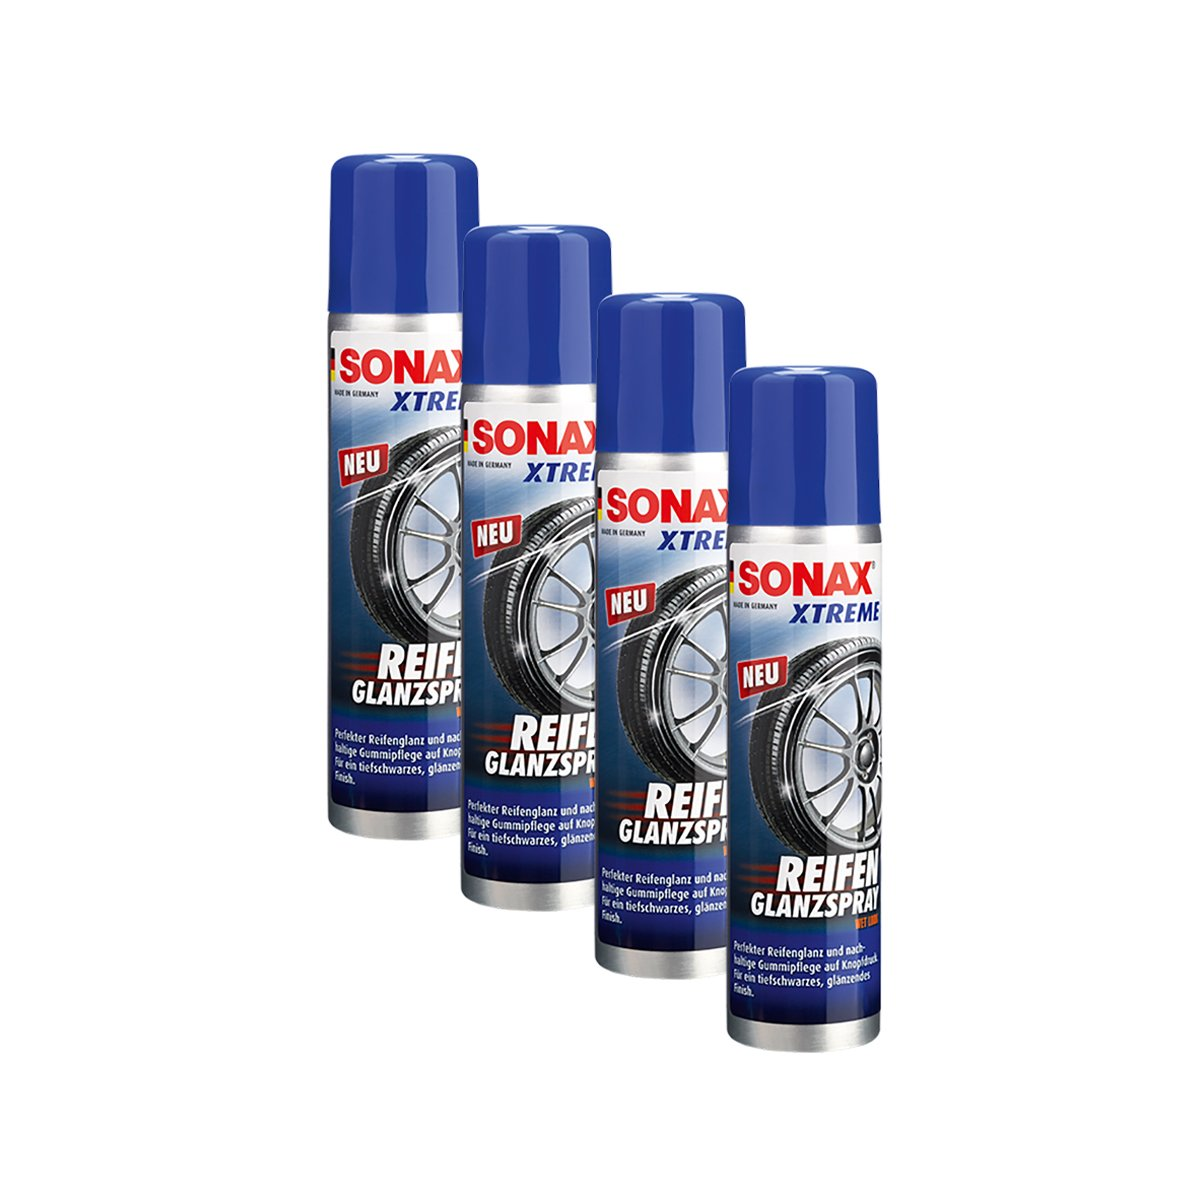 SONAX 4X 02353000 Xtreme ReifenGlanzSpray Wet Look Reifenspray 400ml